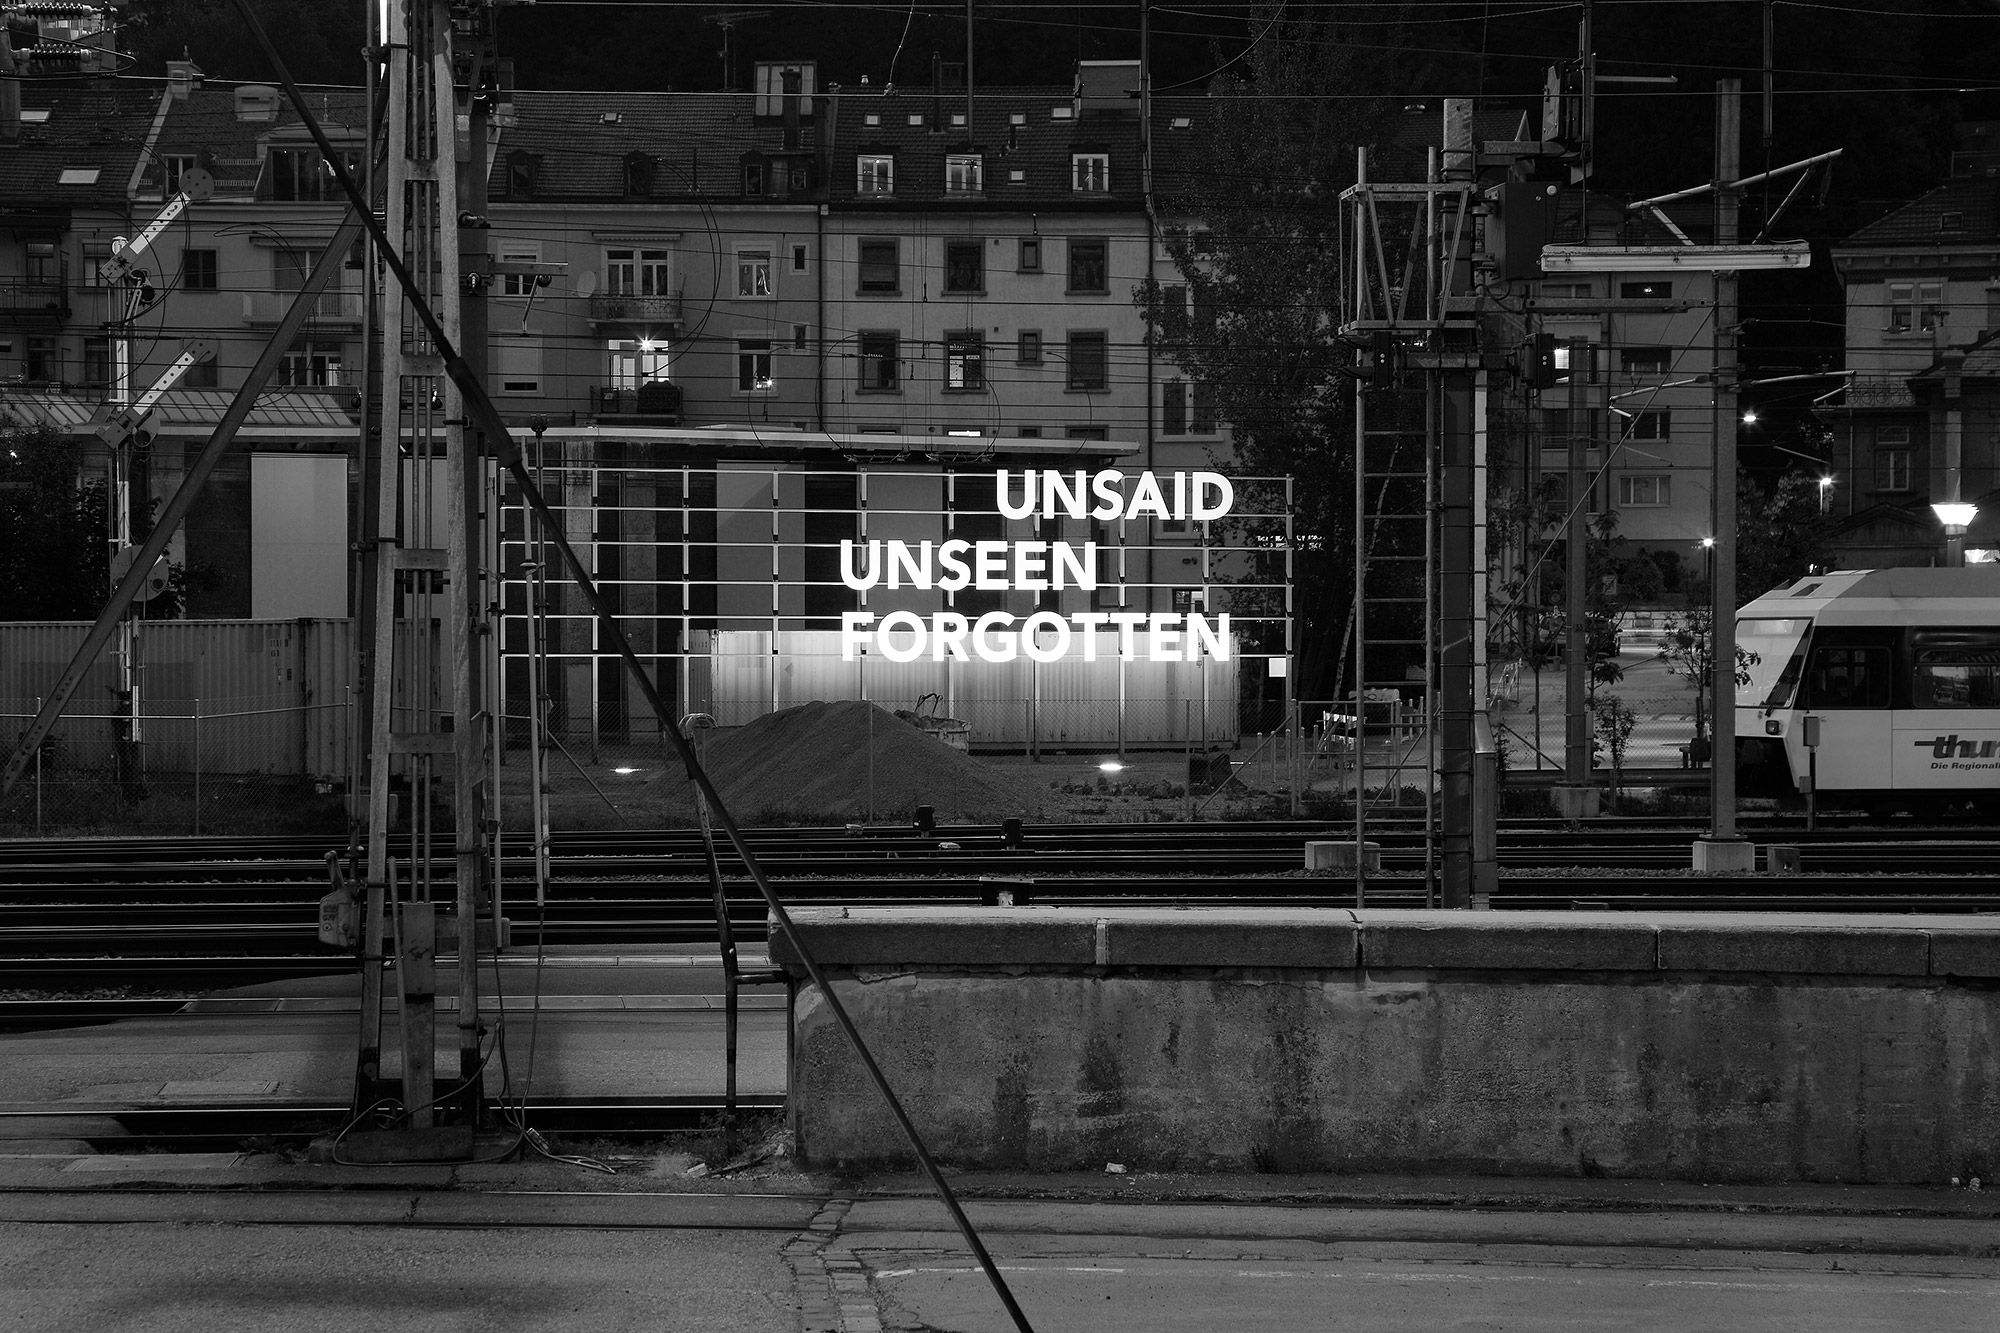 Famed, Untitled [Unsaid, Unseen, Forgotten], 2011